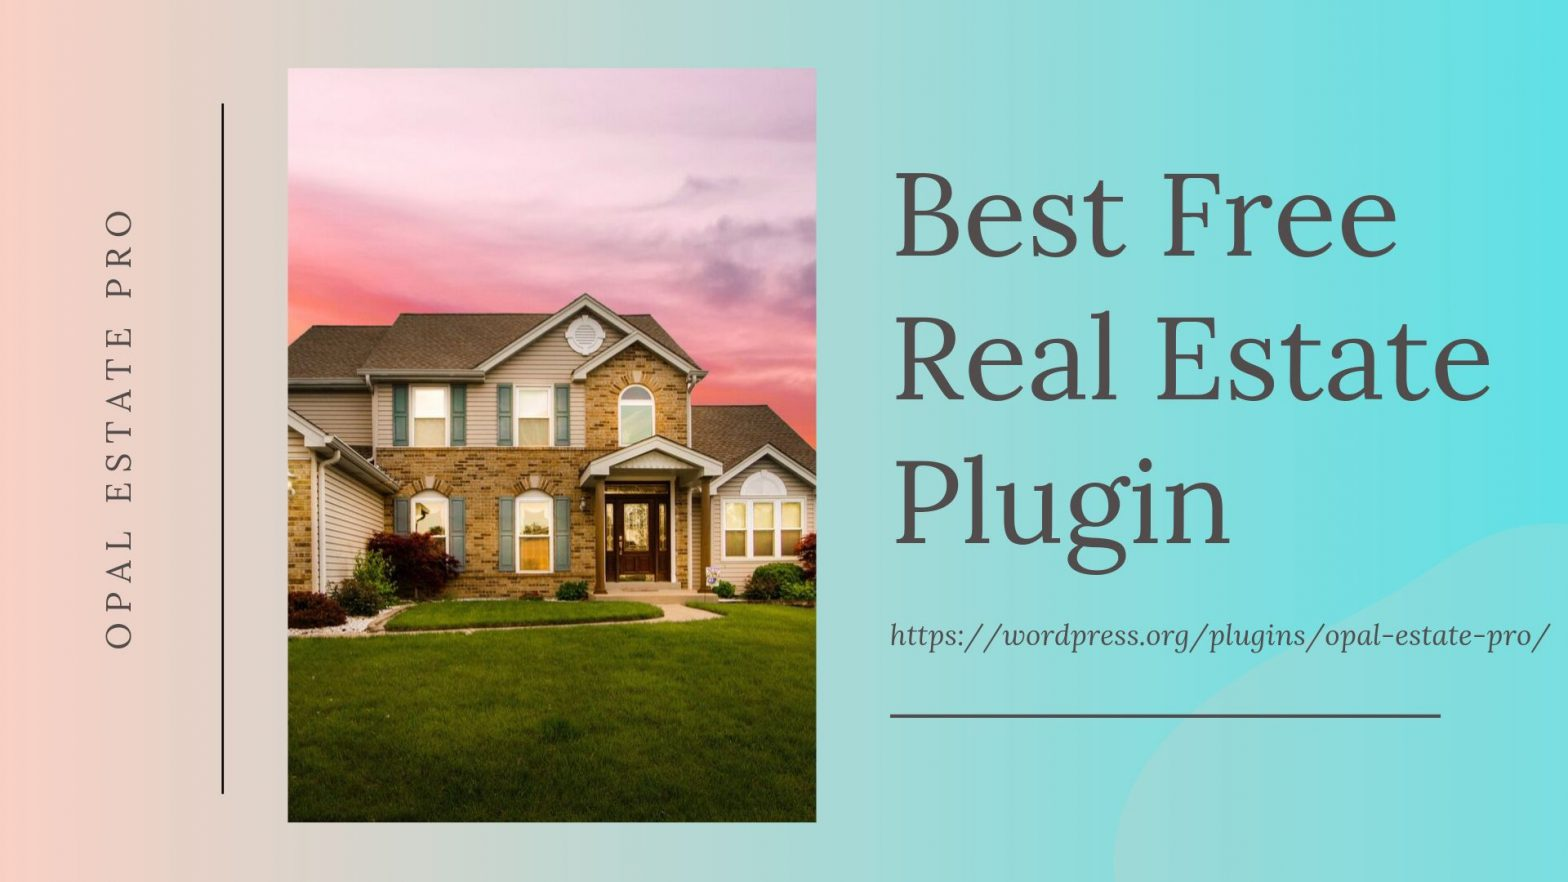 Best Free Real Estate Plugin